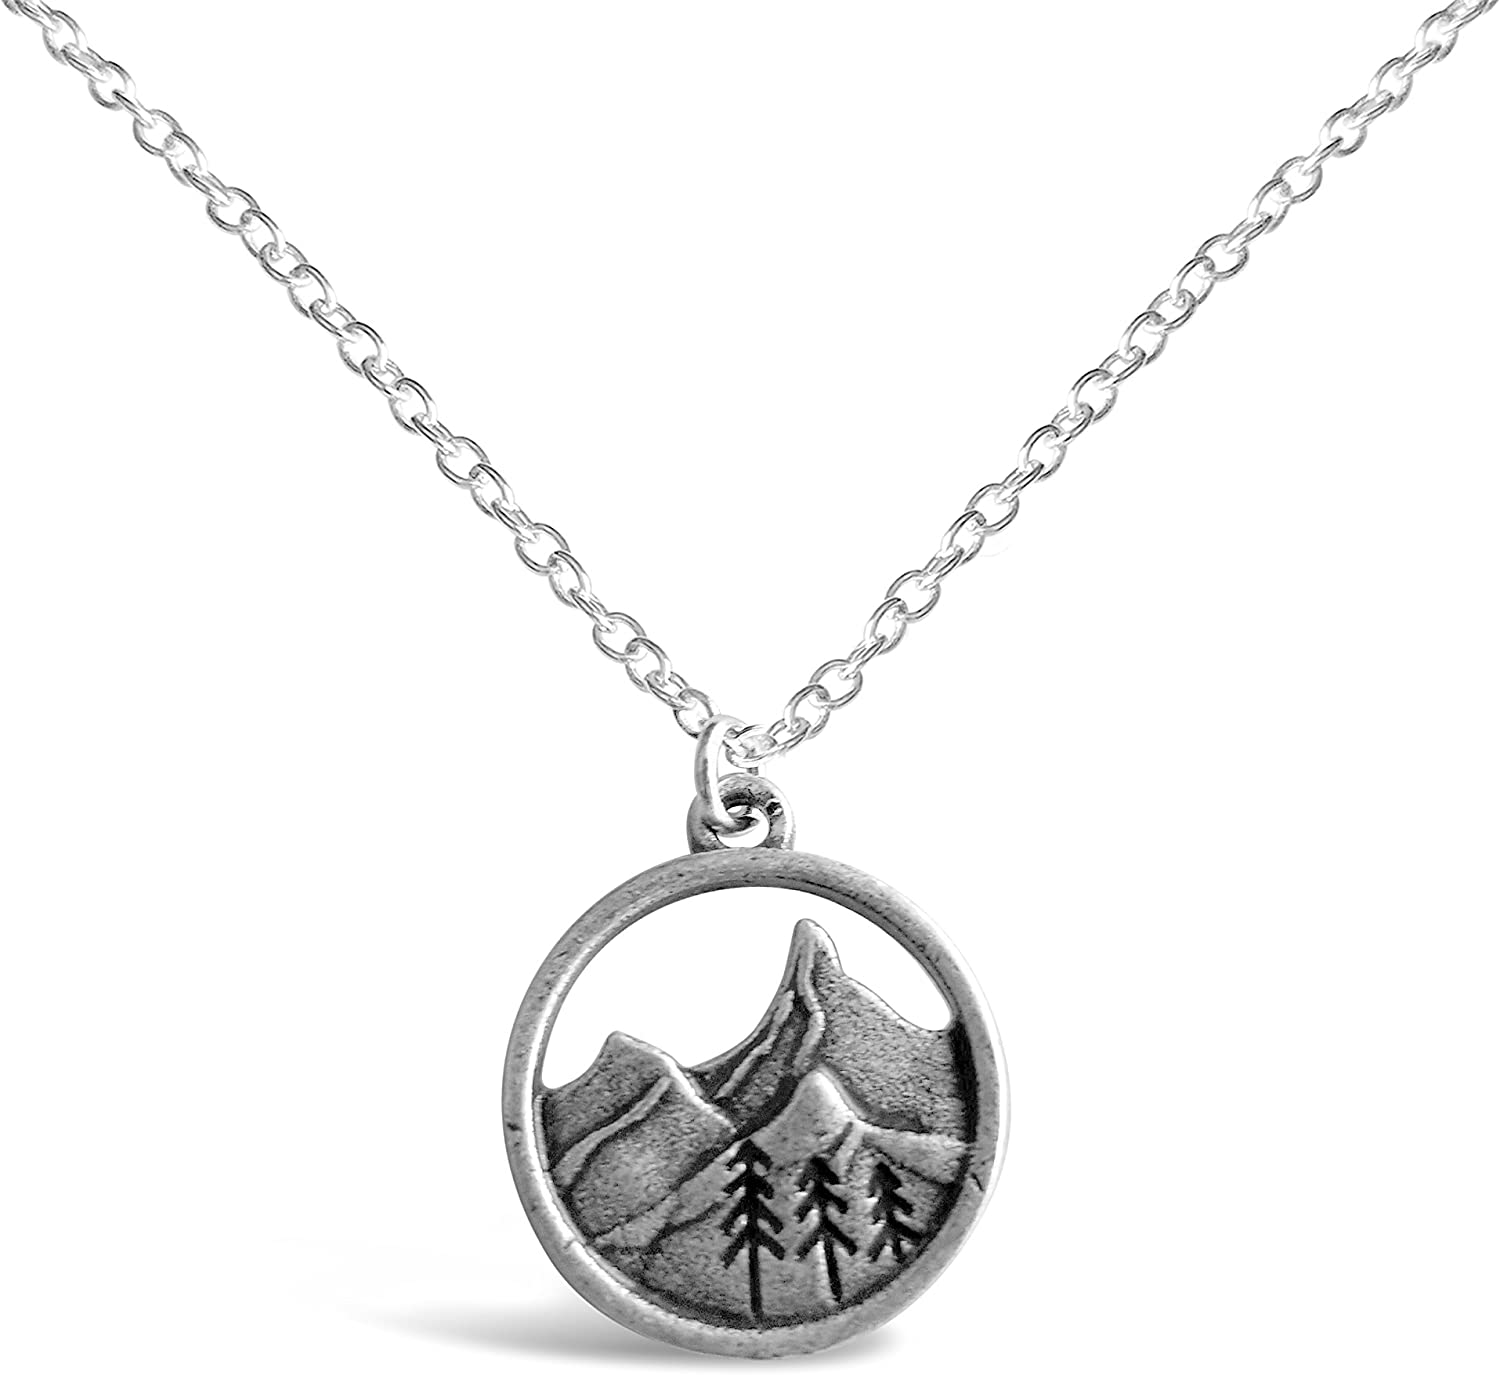 Rosa Vila 3D Mountain Range Necklace RV2, Mountains Nature Necklace, Ideal Outdoorsy Gifts For Women, Gifts For Nature Lovers